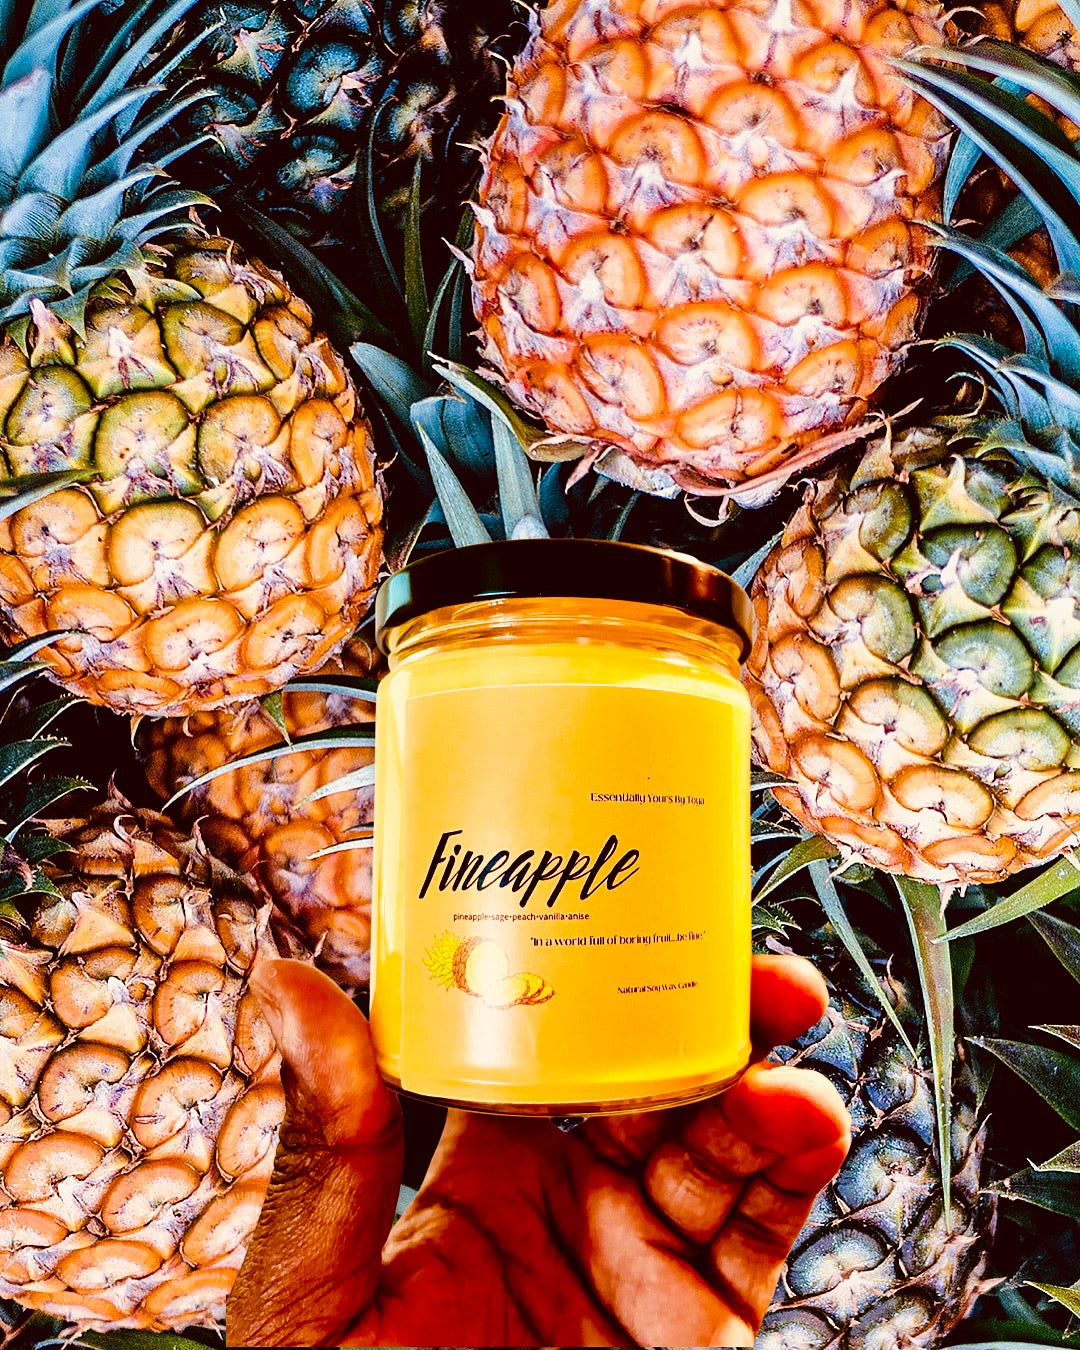 Fineapple Candle